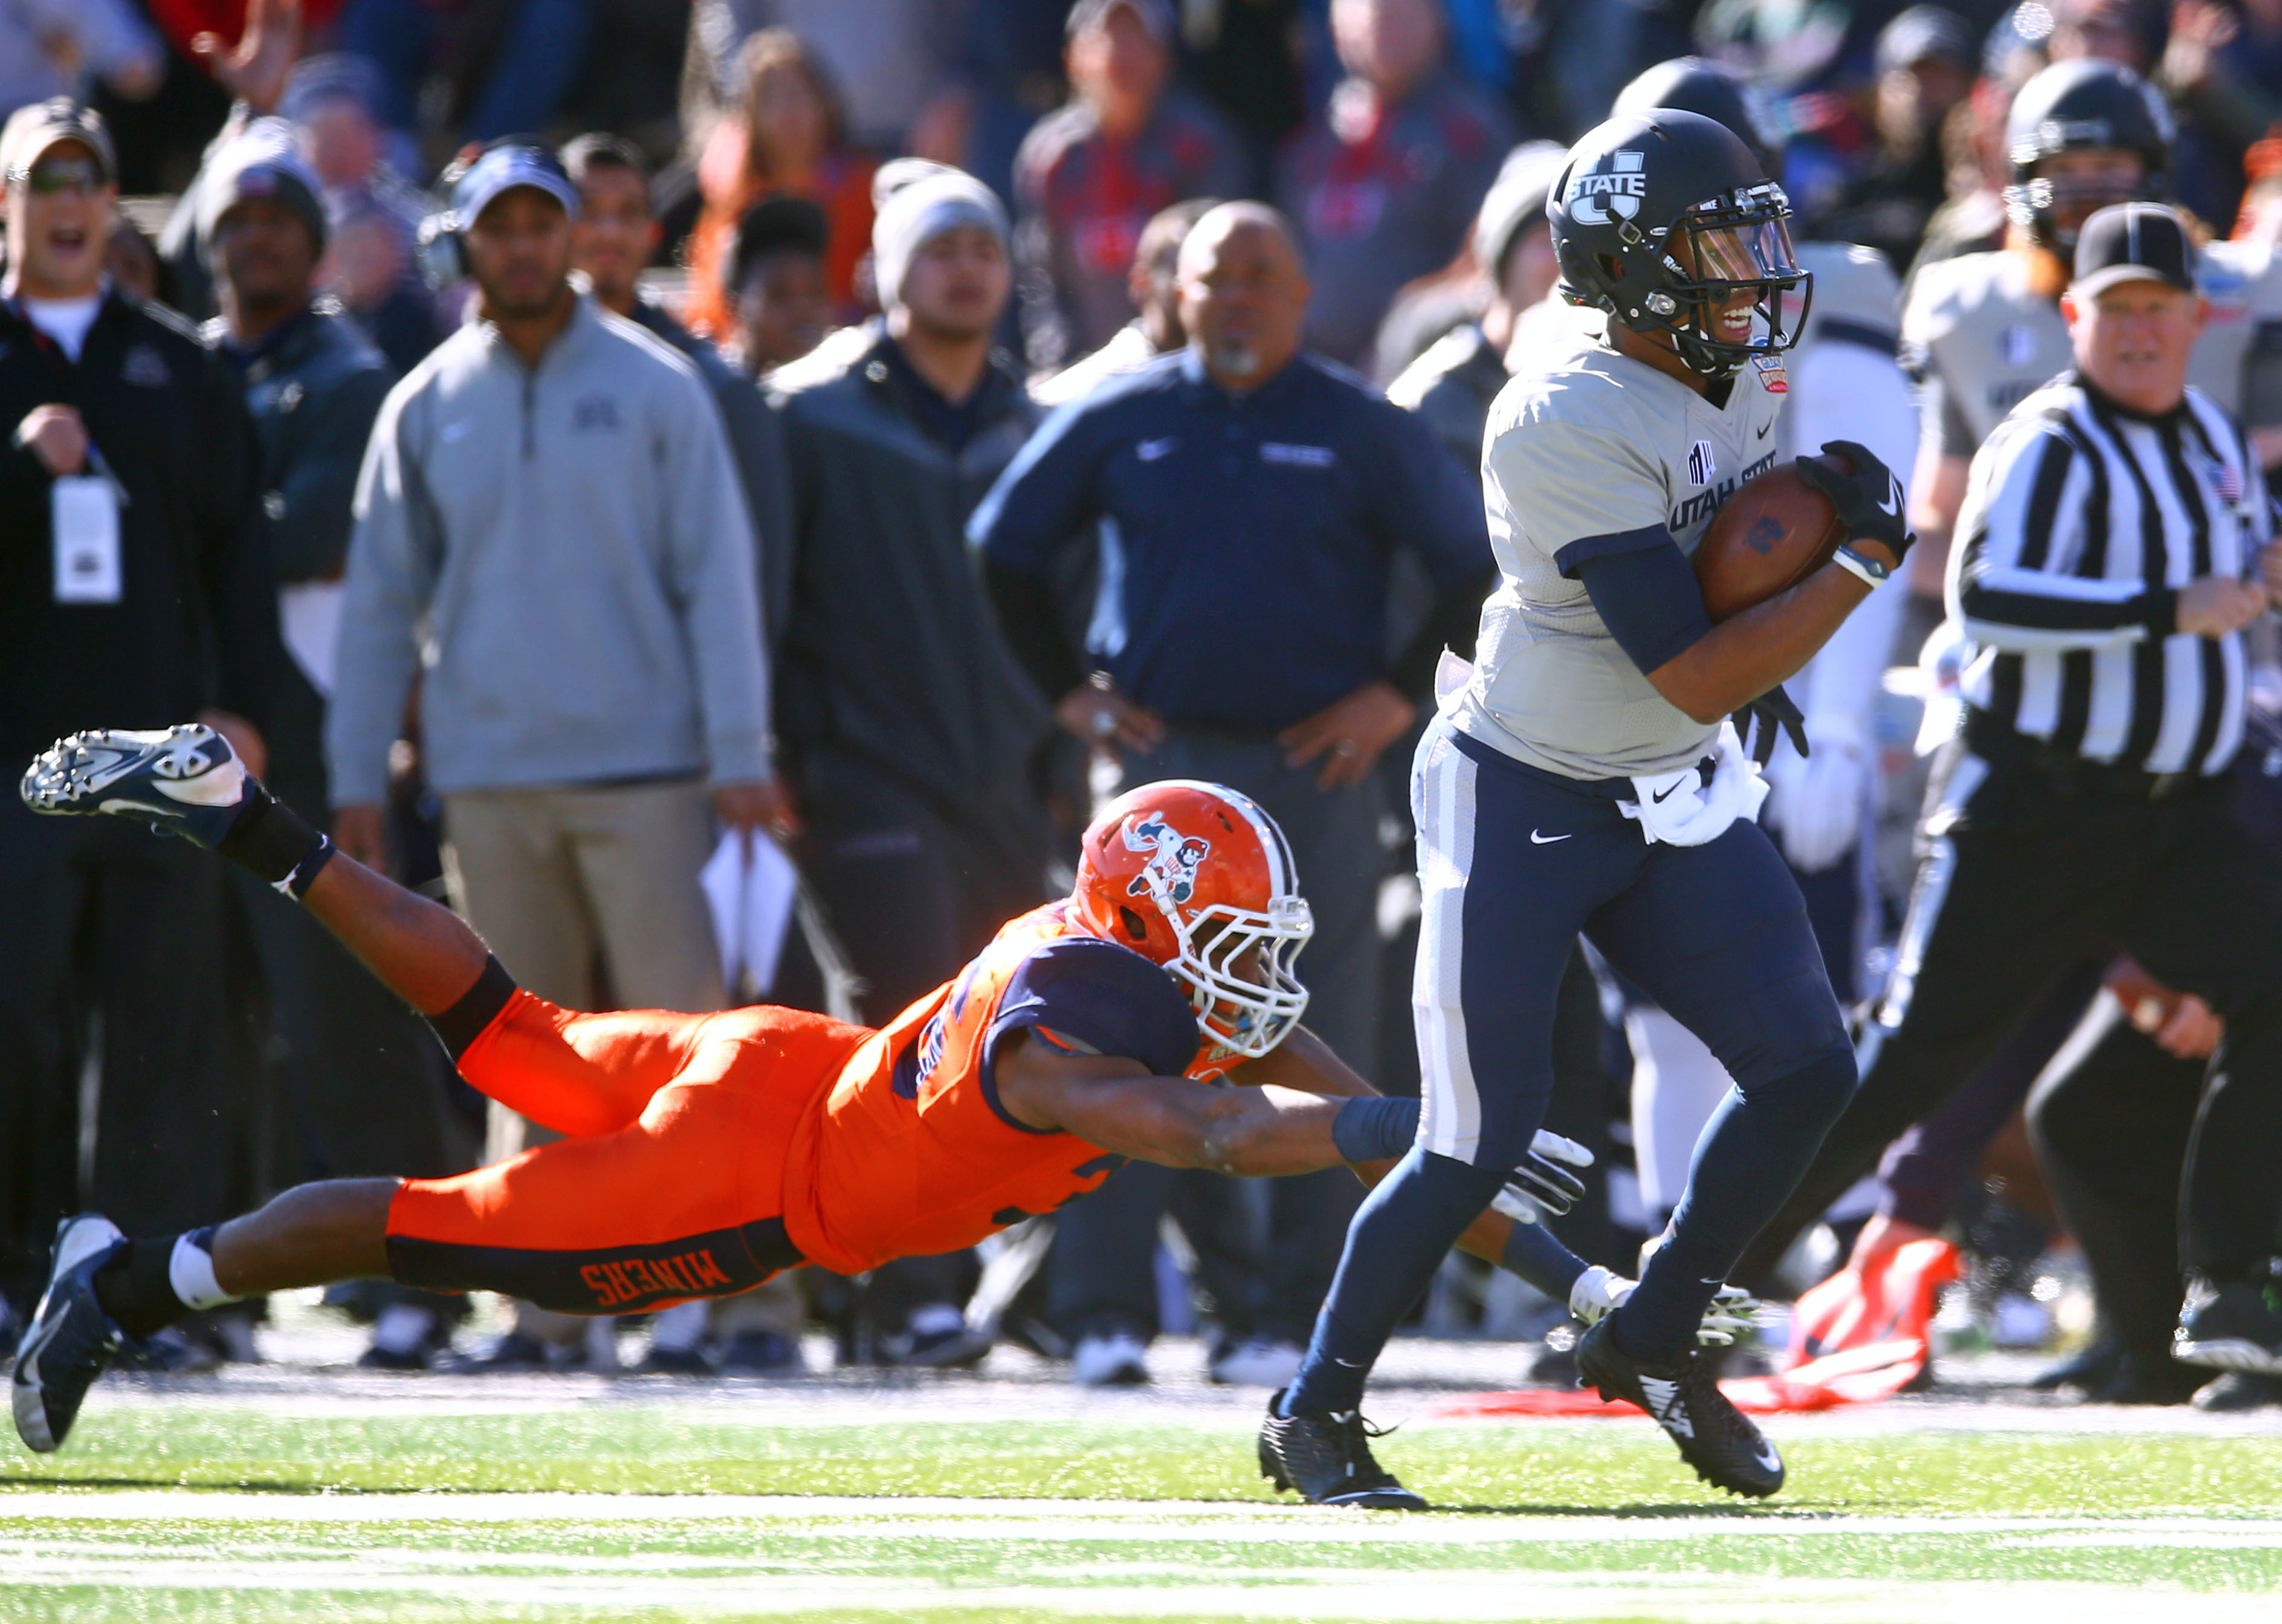 Kent Myers runs away from a UTEP defender in Utah State's New Mexico Bowl Victory